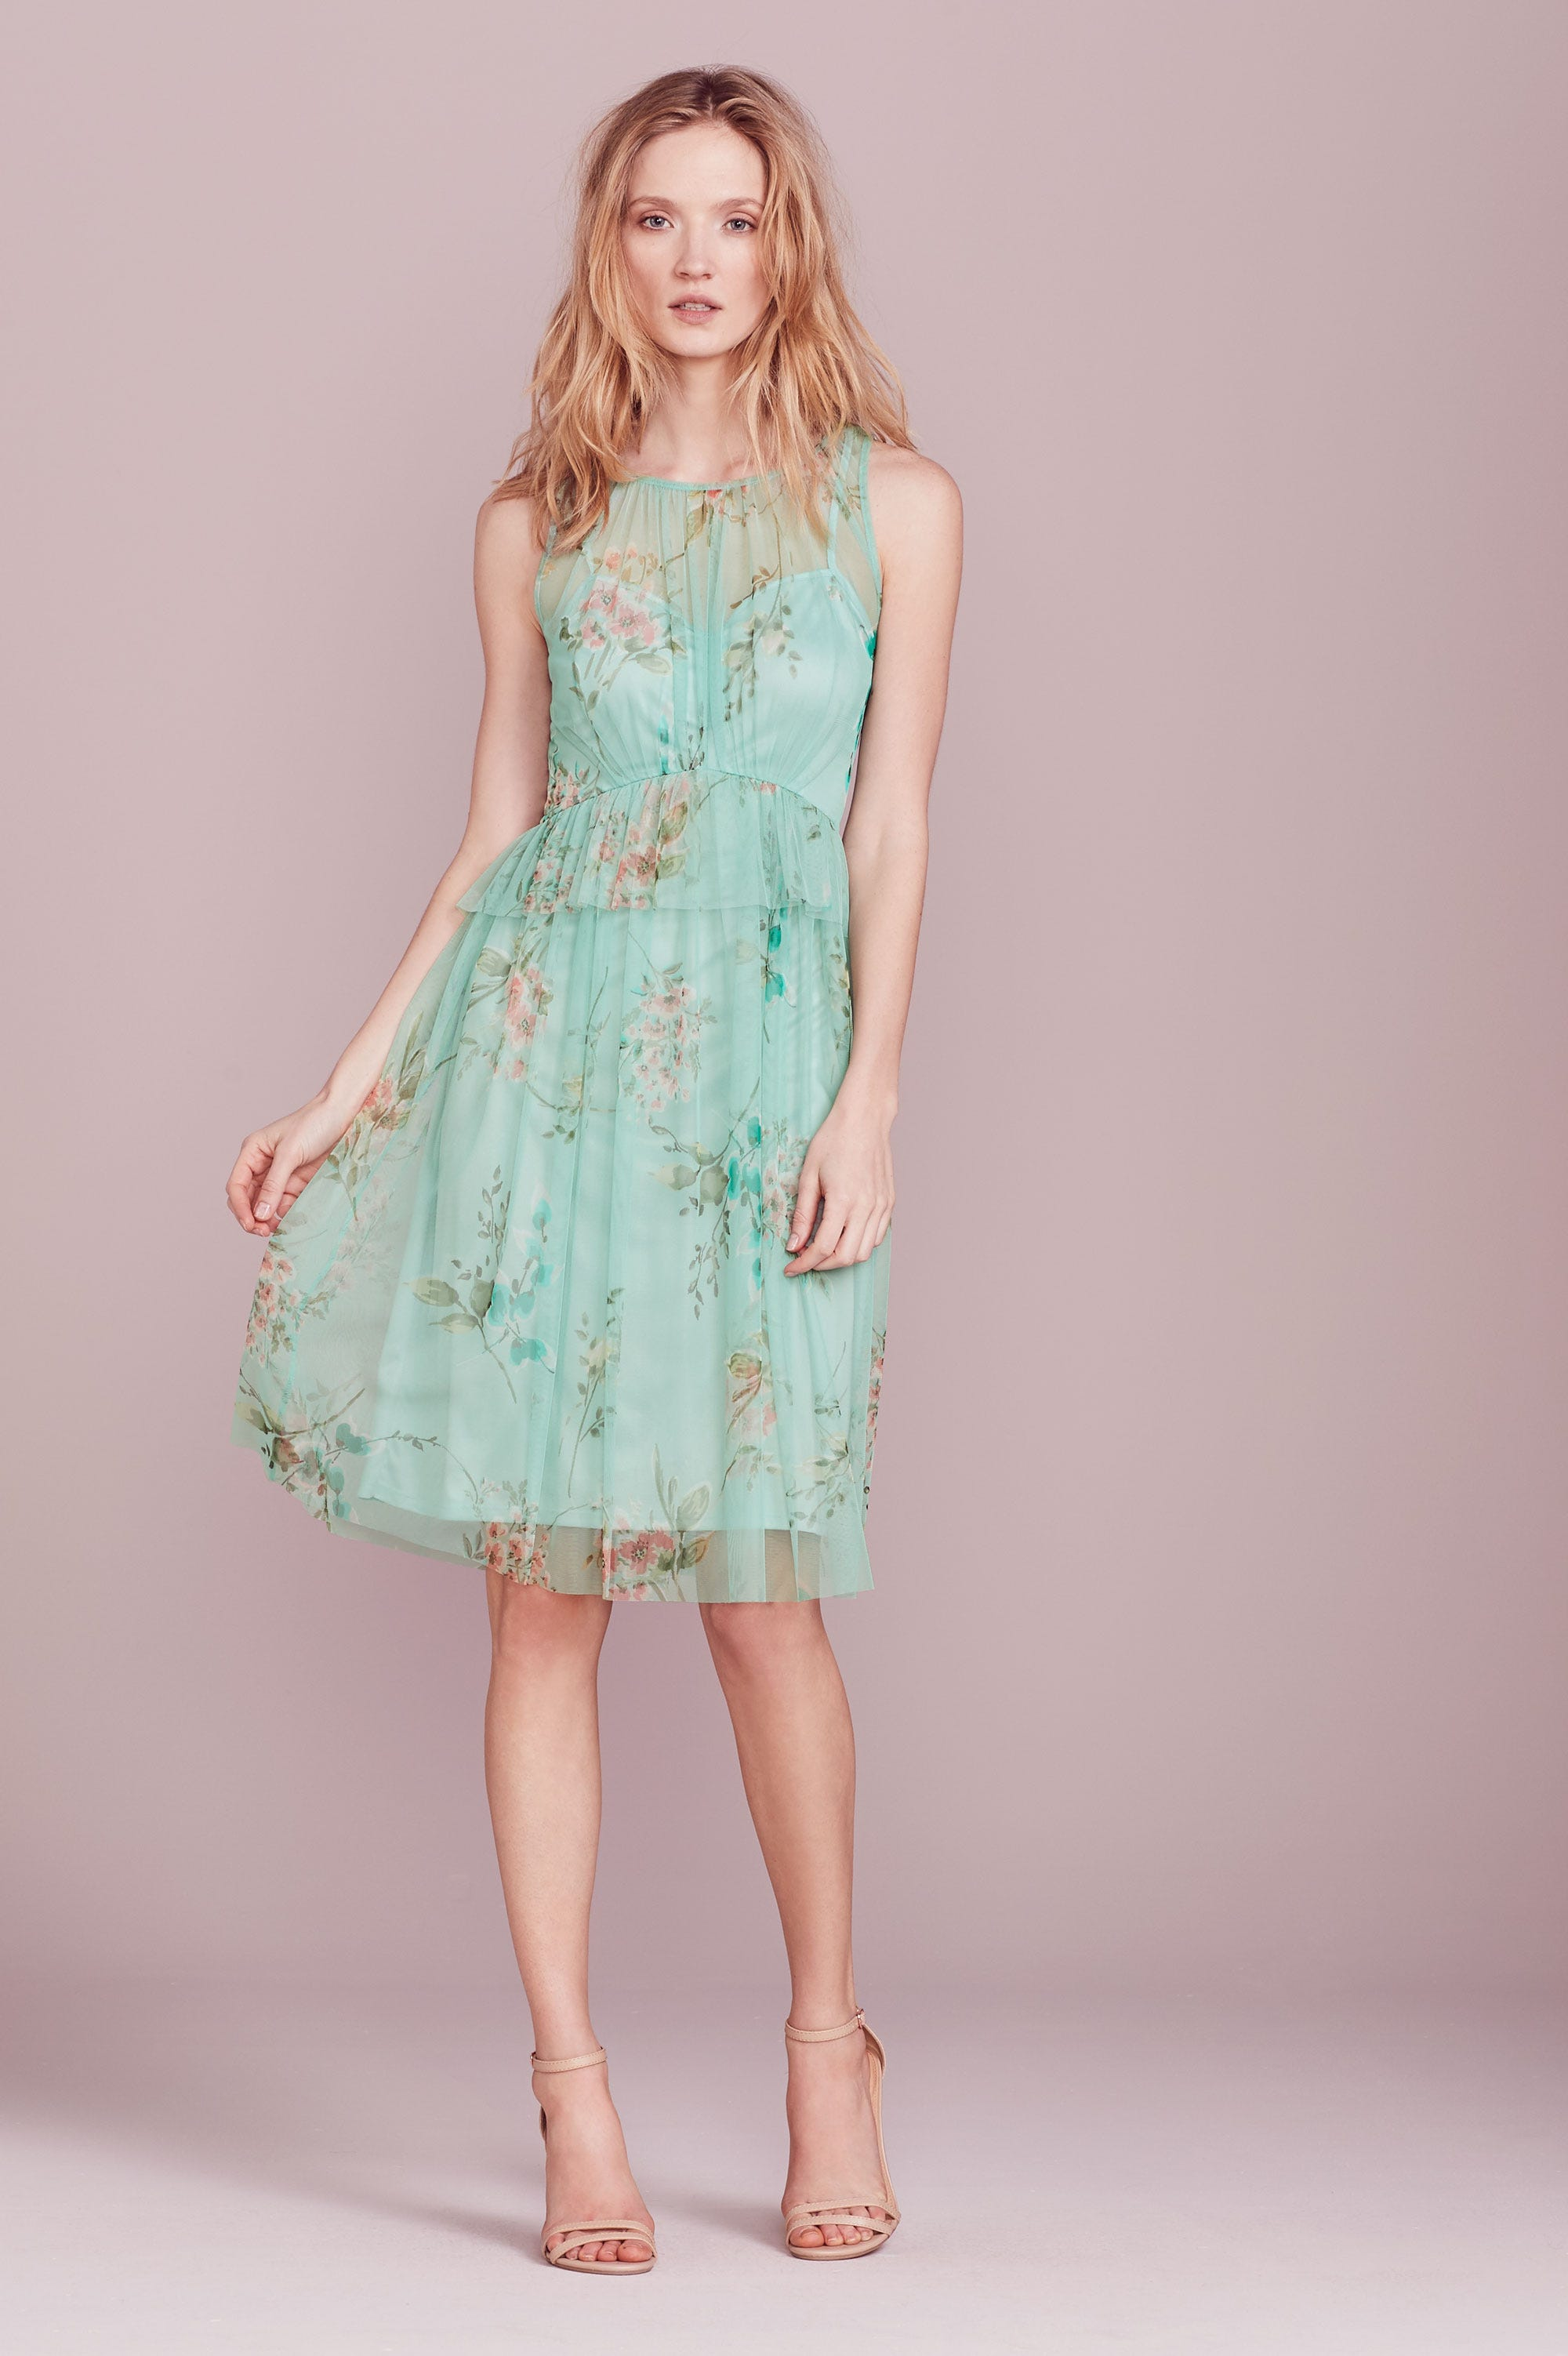 Lauren Conrad Kohls Line Prom Dress Date Night Outfits